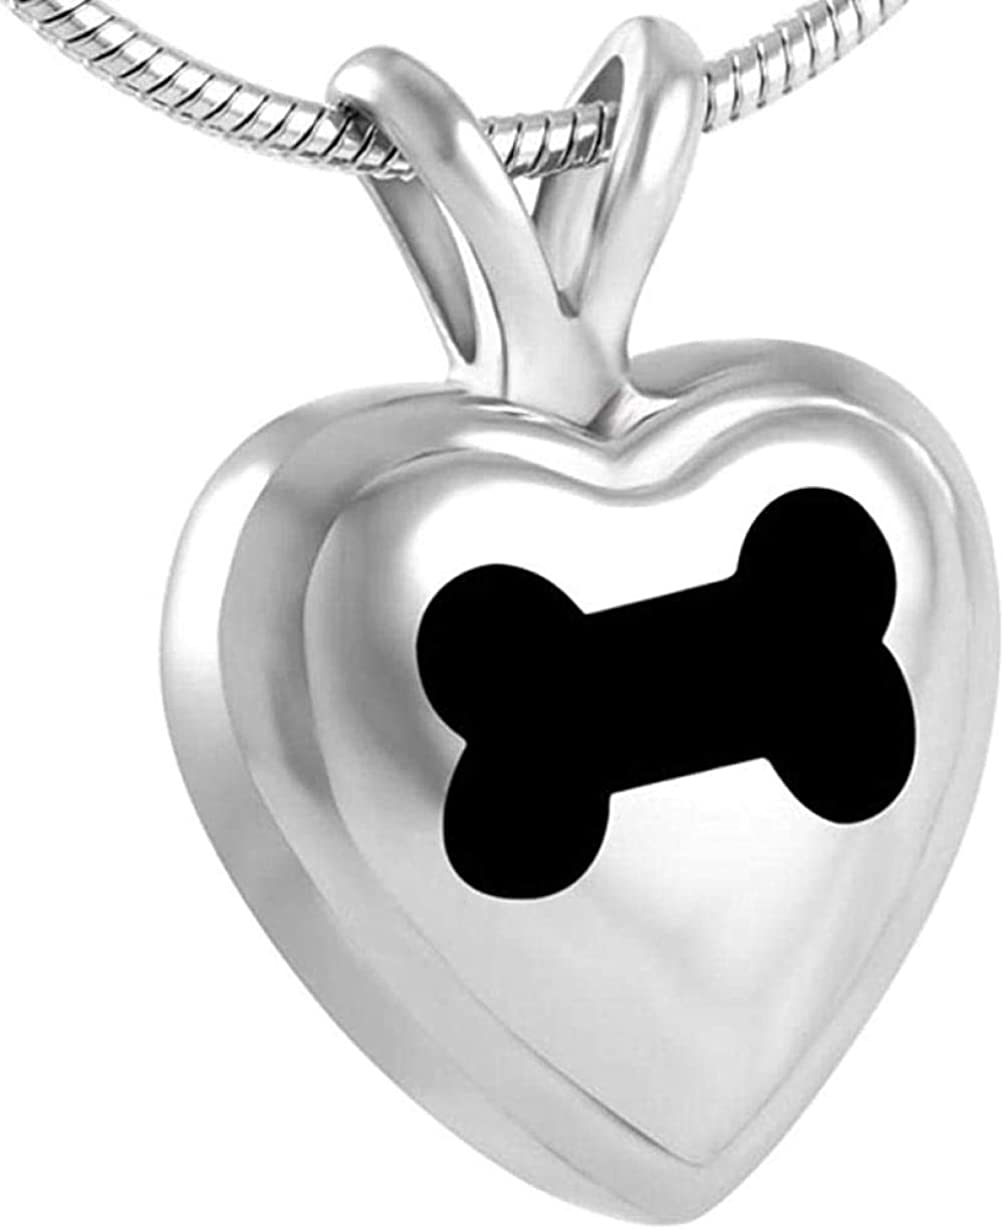 Cremation Memorial Ashes Urn Necklace Memorial Jewelry Pendant Necklace with Heart Cremation Urn Ashes Urns Cremation Keepsake Memorial